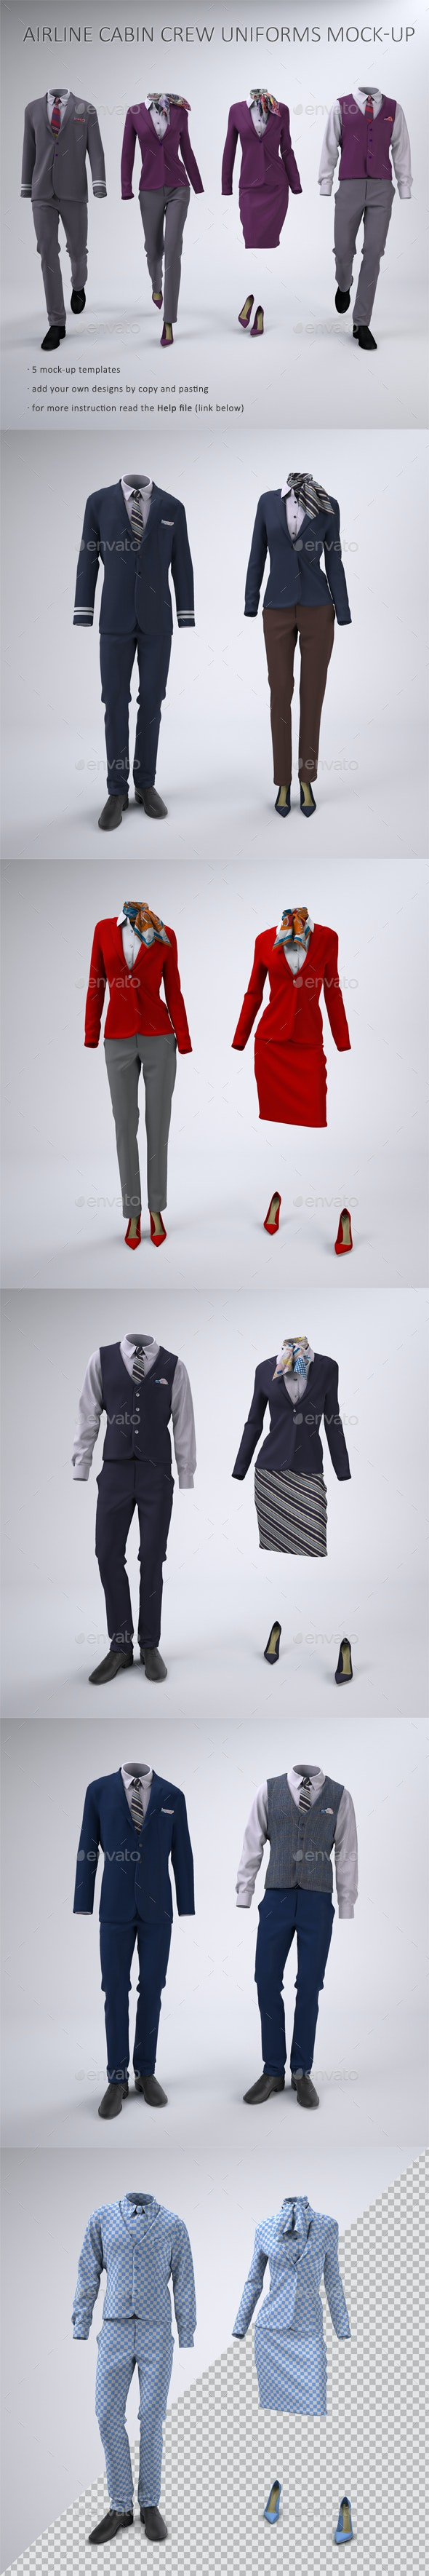 Airline Cabin Crew or Hotel Staff Uniforms Mock-Up